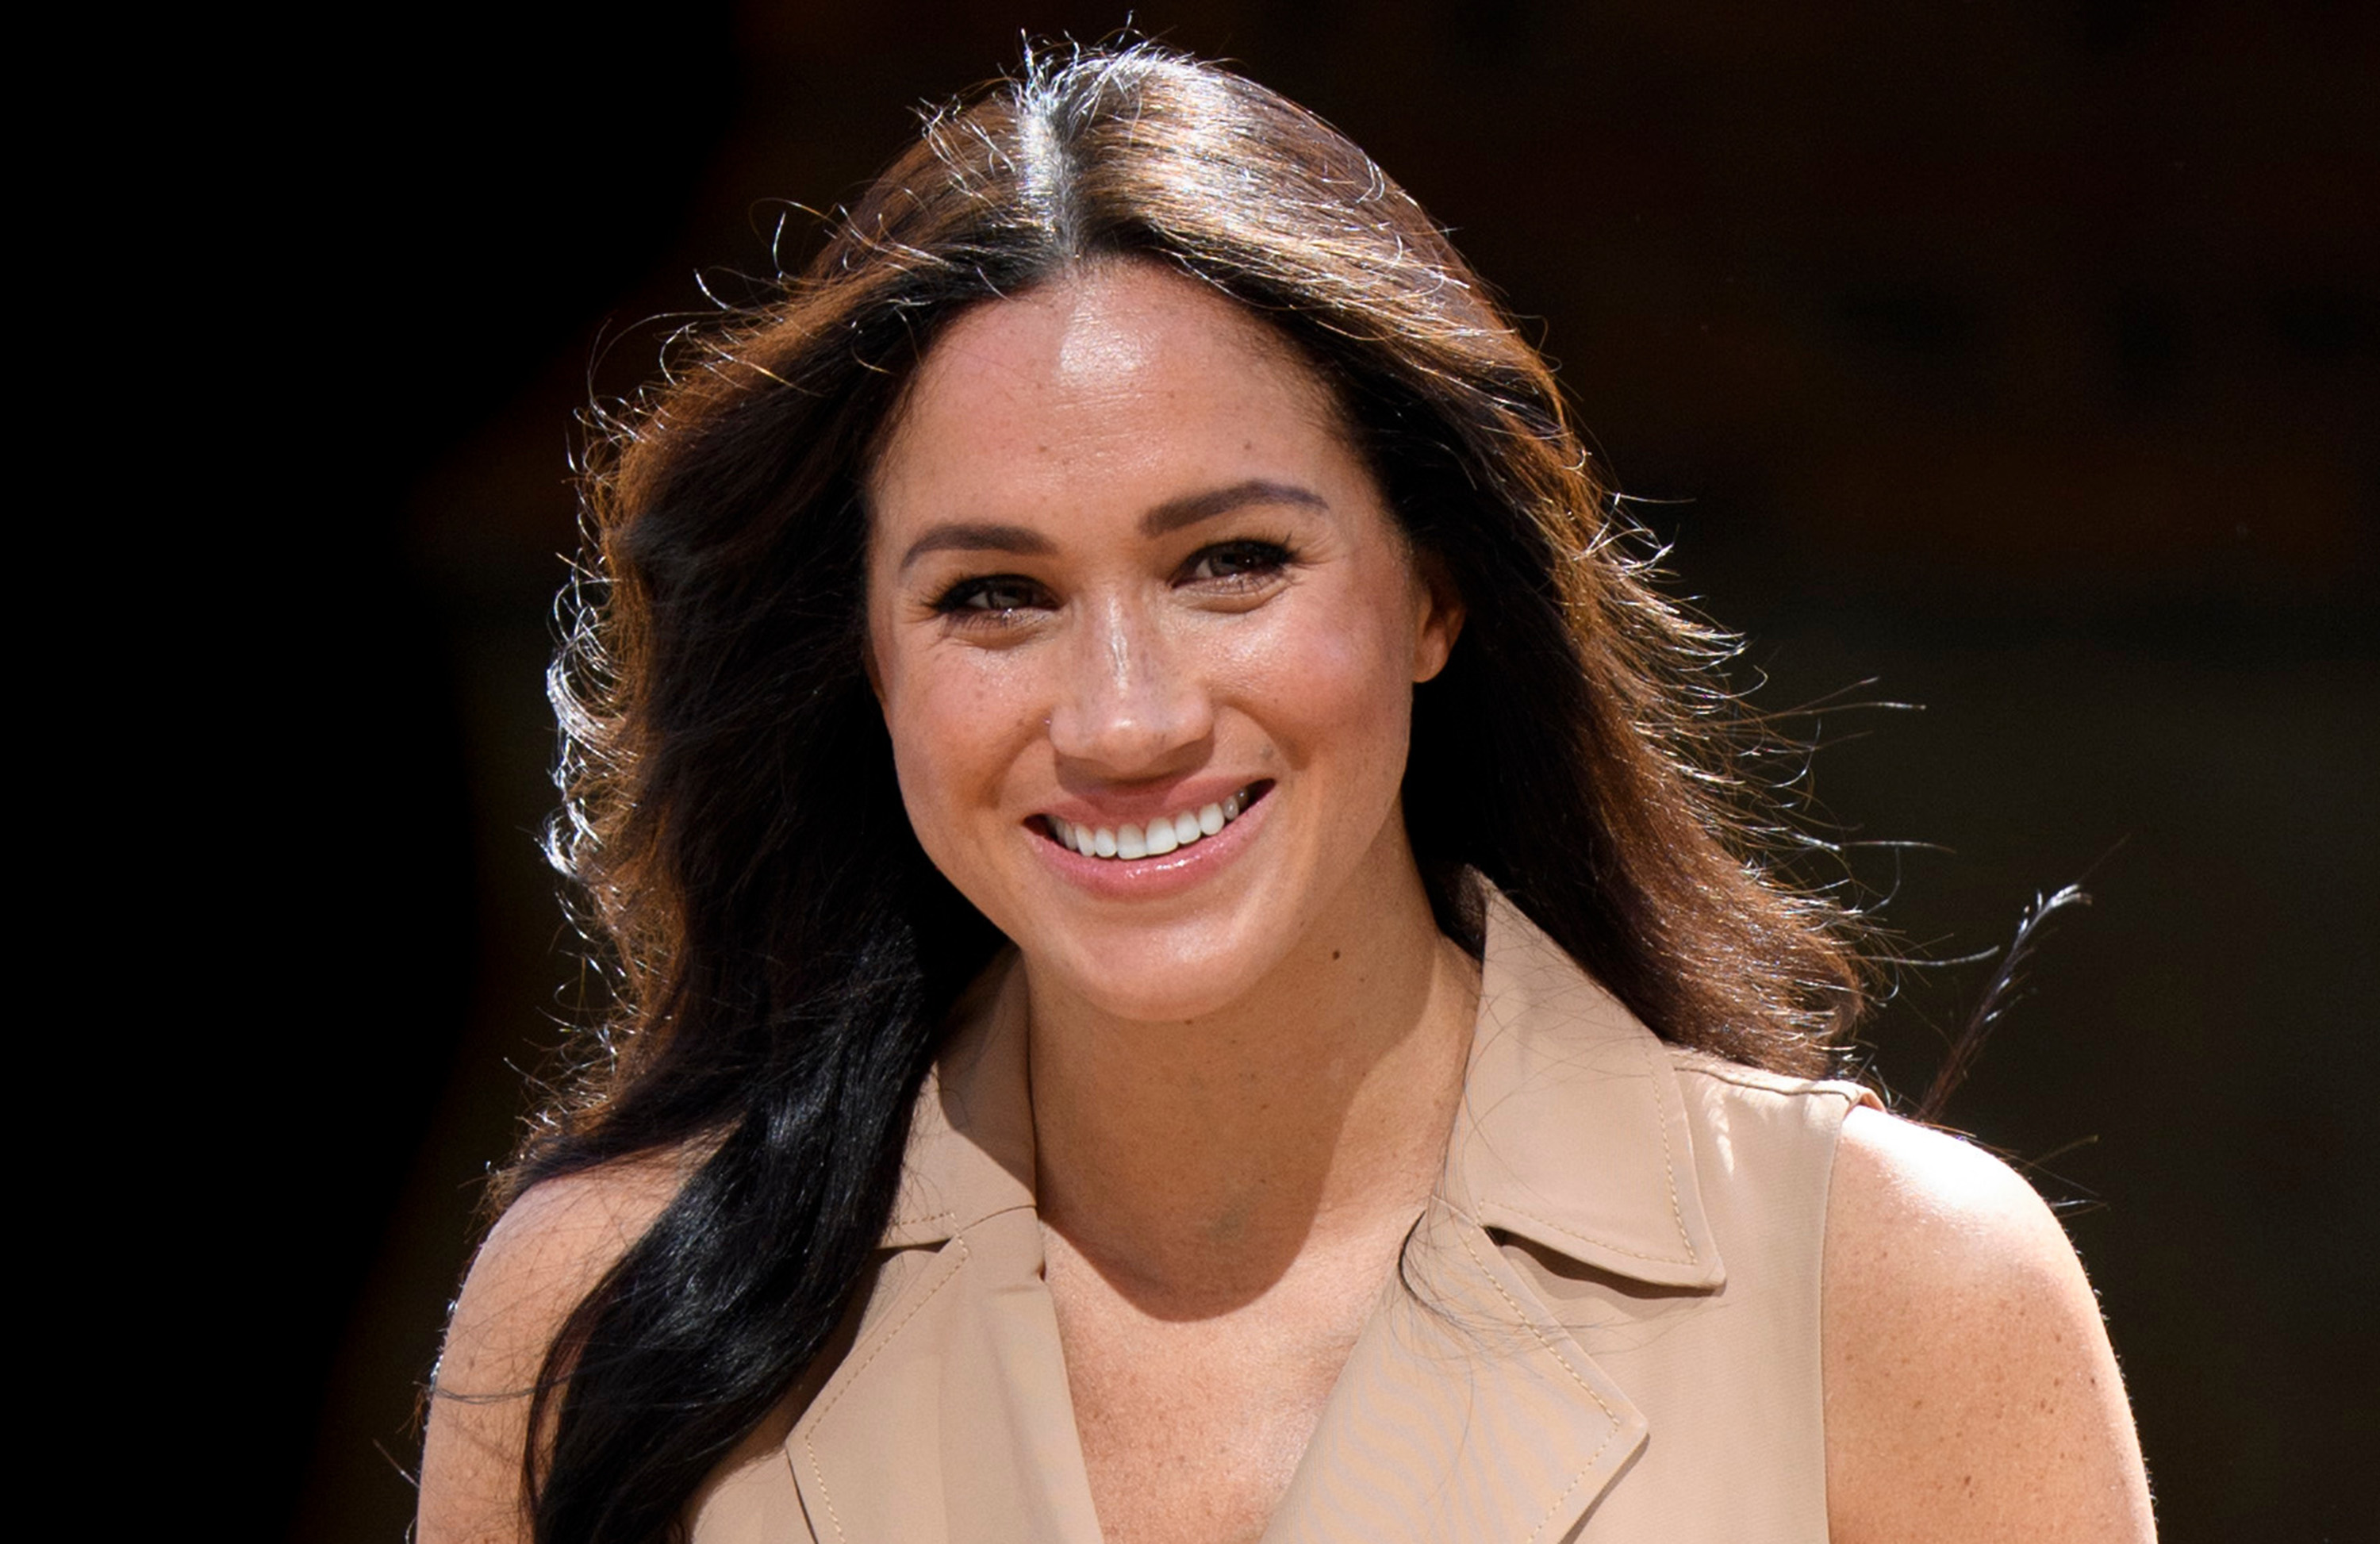 Meghan Markle Accused of 'Confusing and Tortuous' Account in Lawsuit